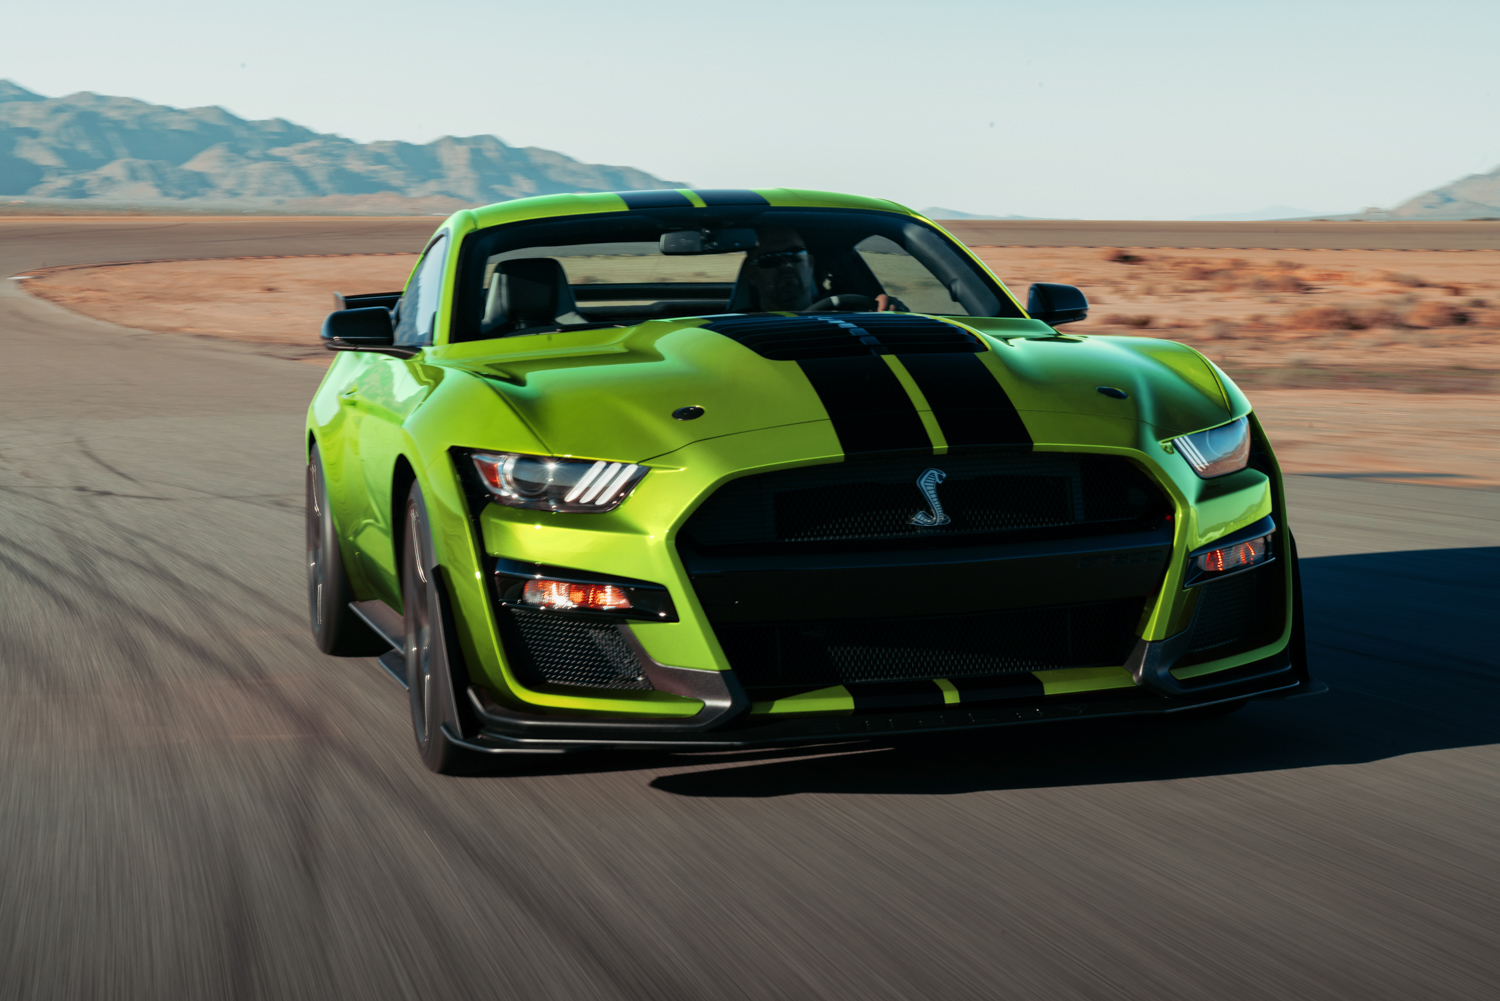 2020 Mustang GT500 in Grabber Lime front 3/4